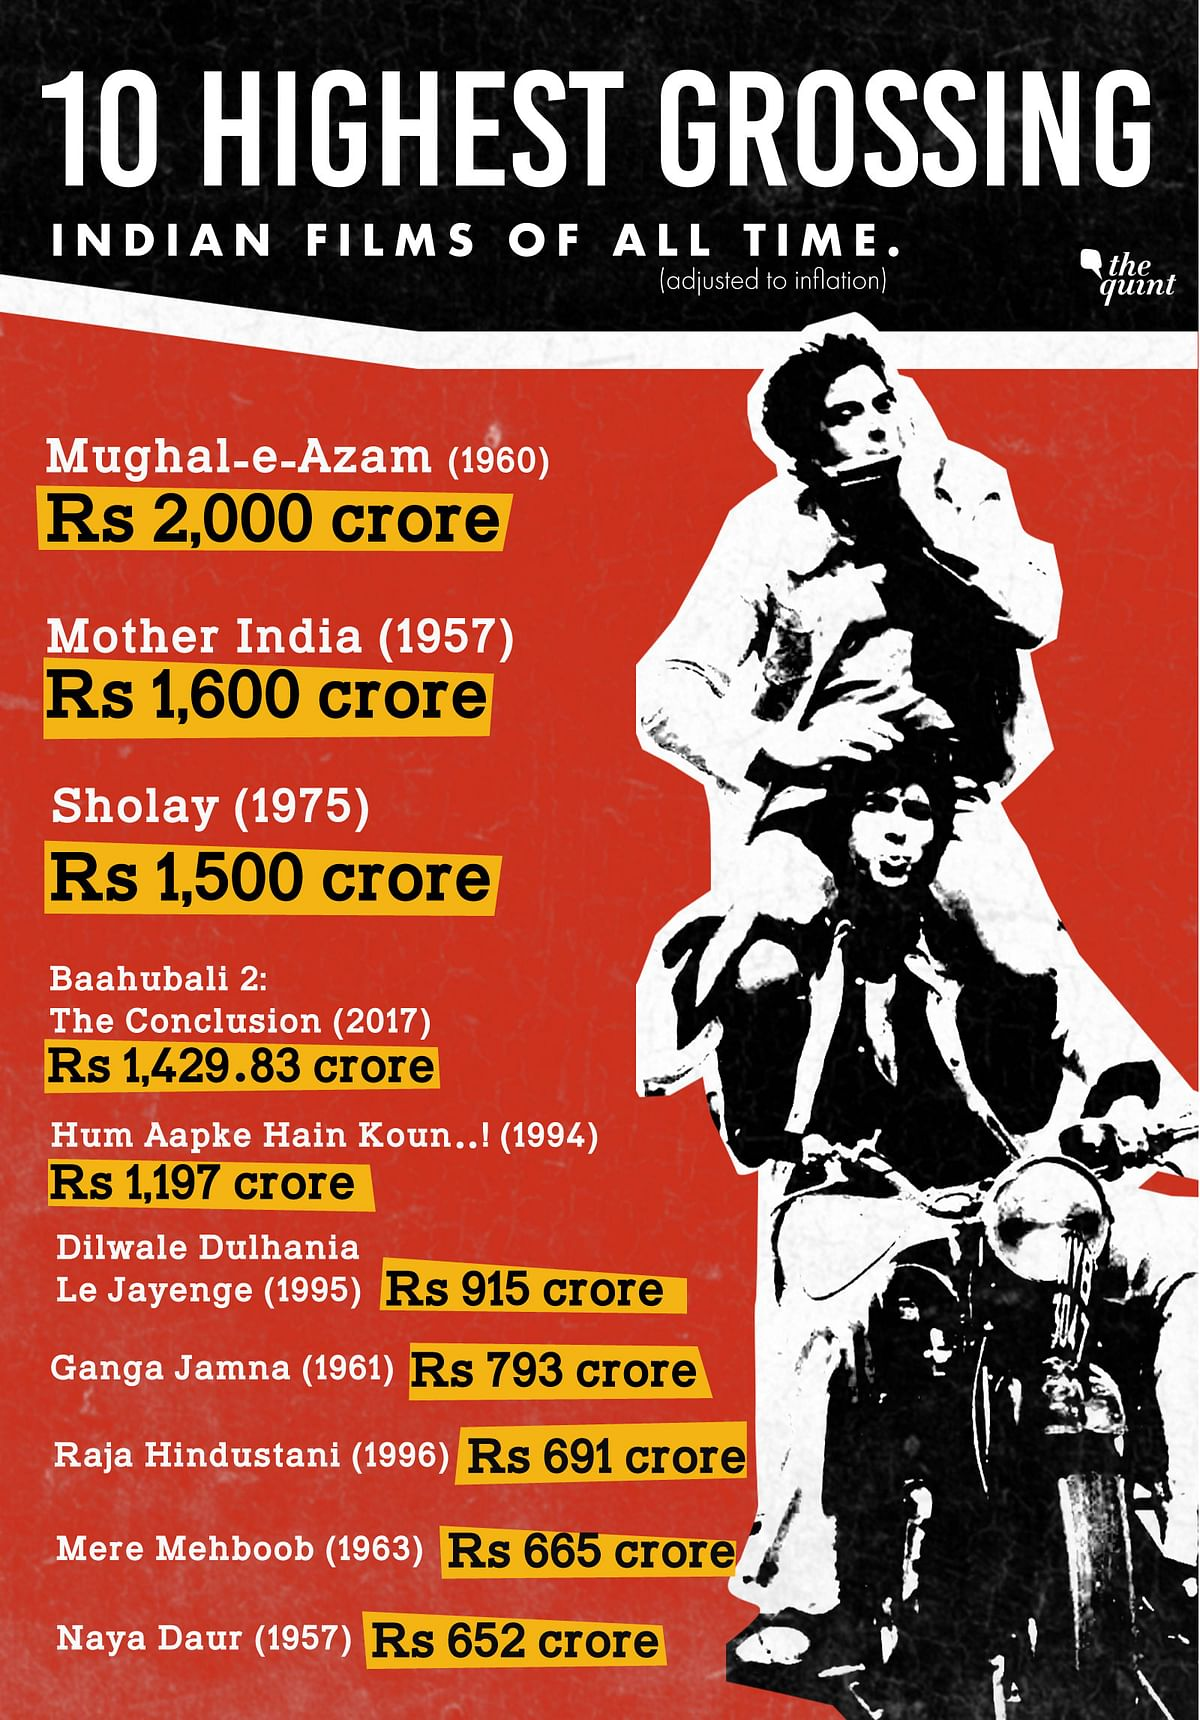 Which is the Highest Grossing Indian Film of All Time?